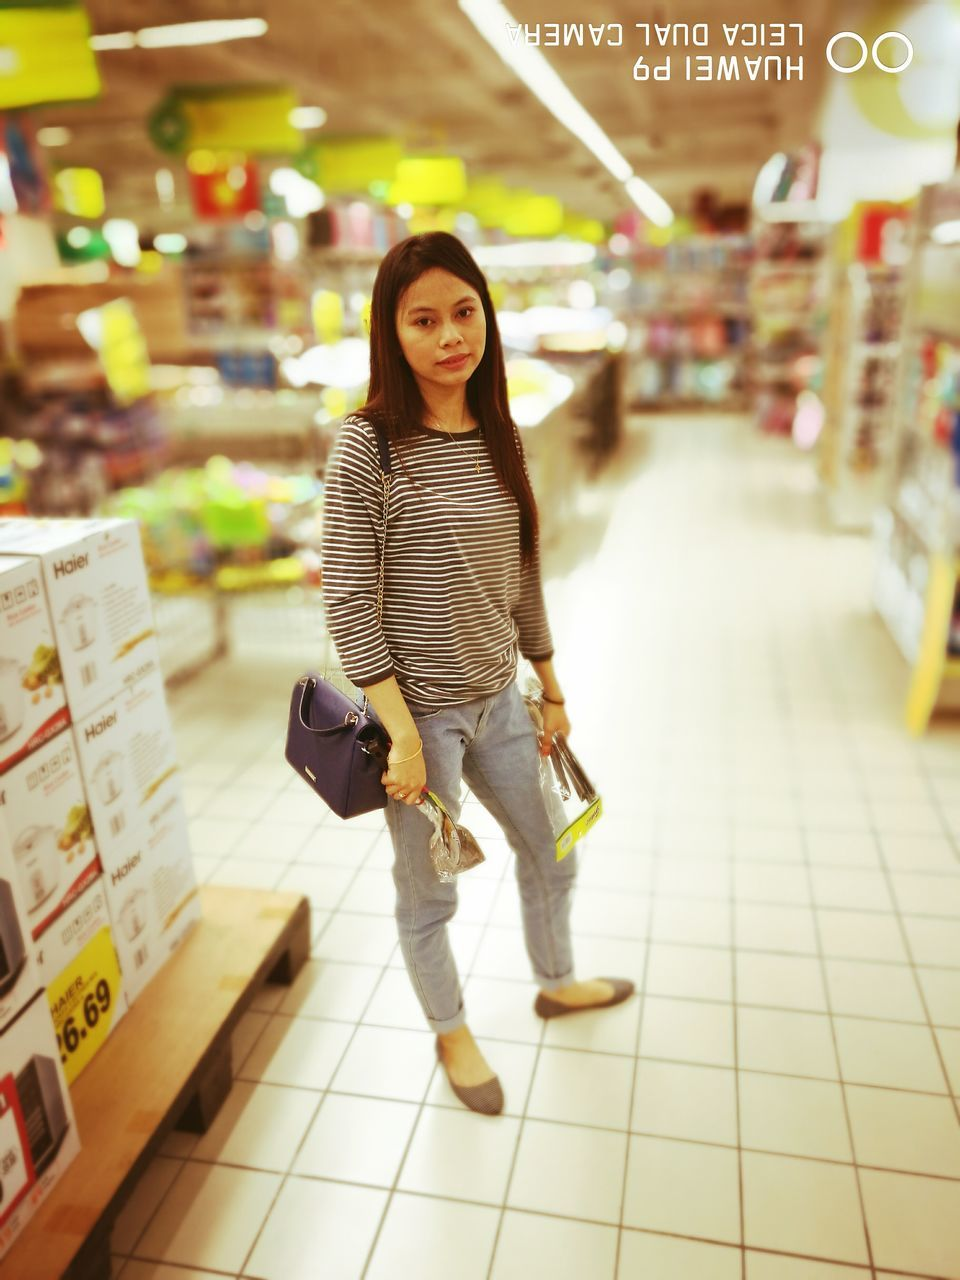 full length, one person, looking at camera, casual clothing, retail, real people, portrait, walking, smiling, store, focus on foreground, lifestyles, consumerism, market, young adult, indoors, standing, happiness, illuminated, day, young women, supermarket, people